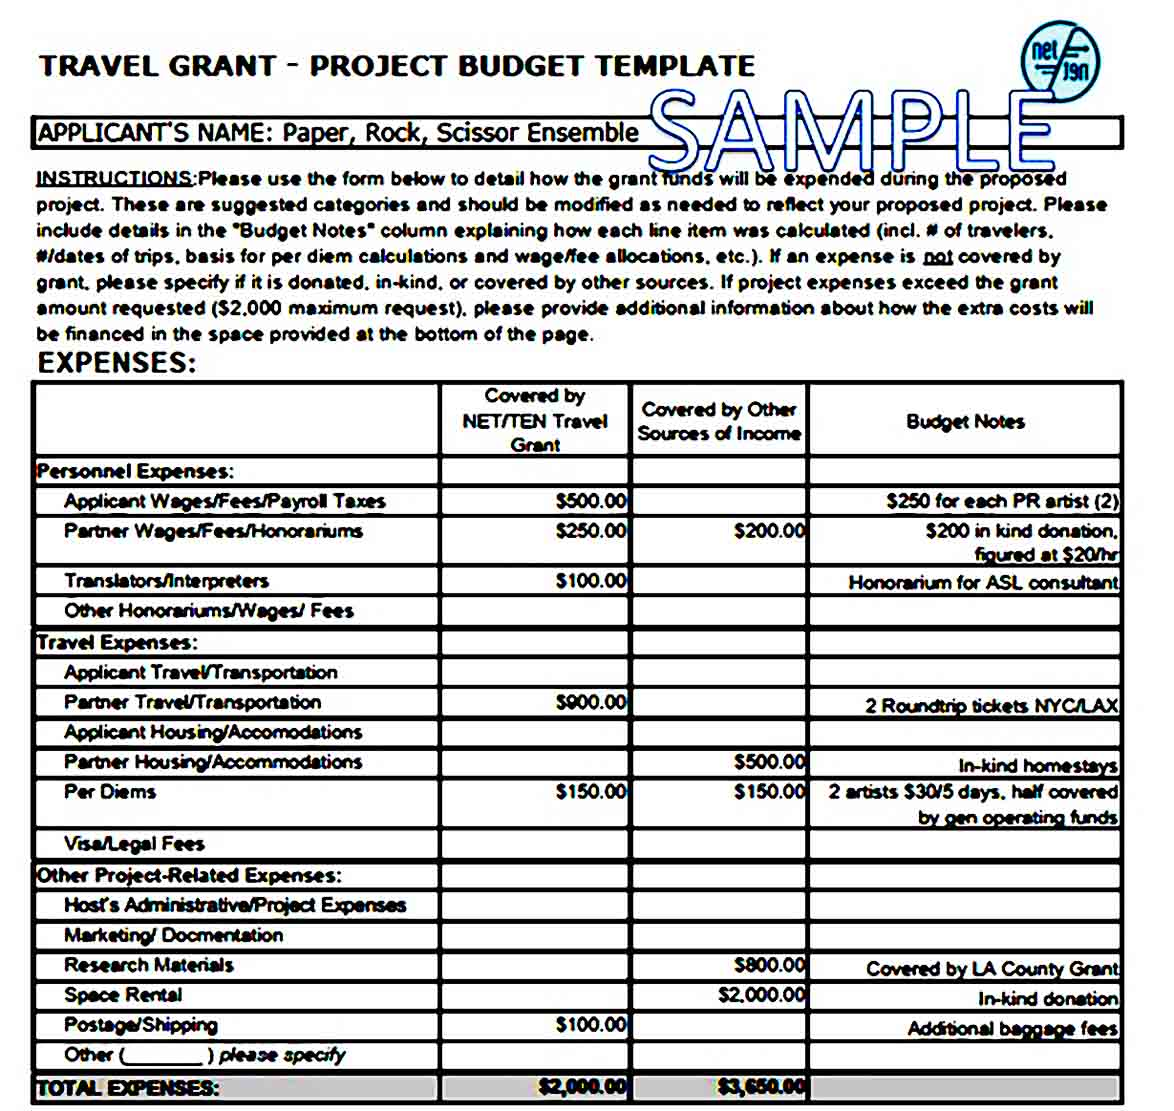 Grant Project Budget Template